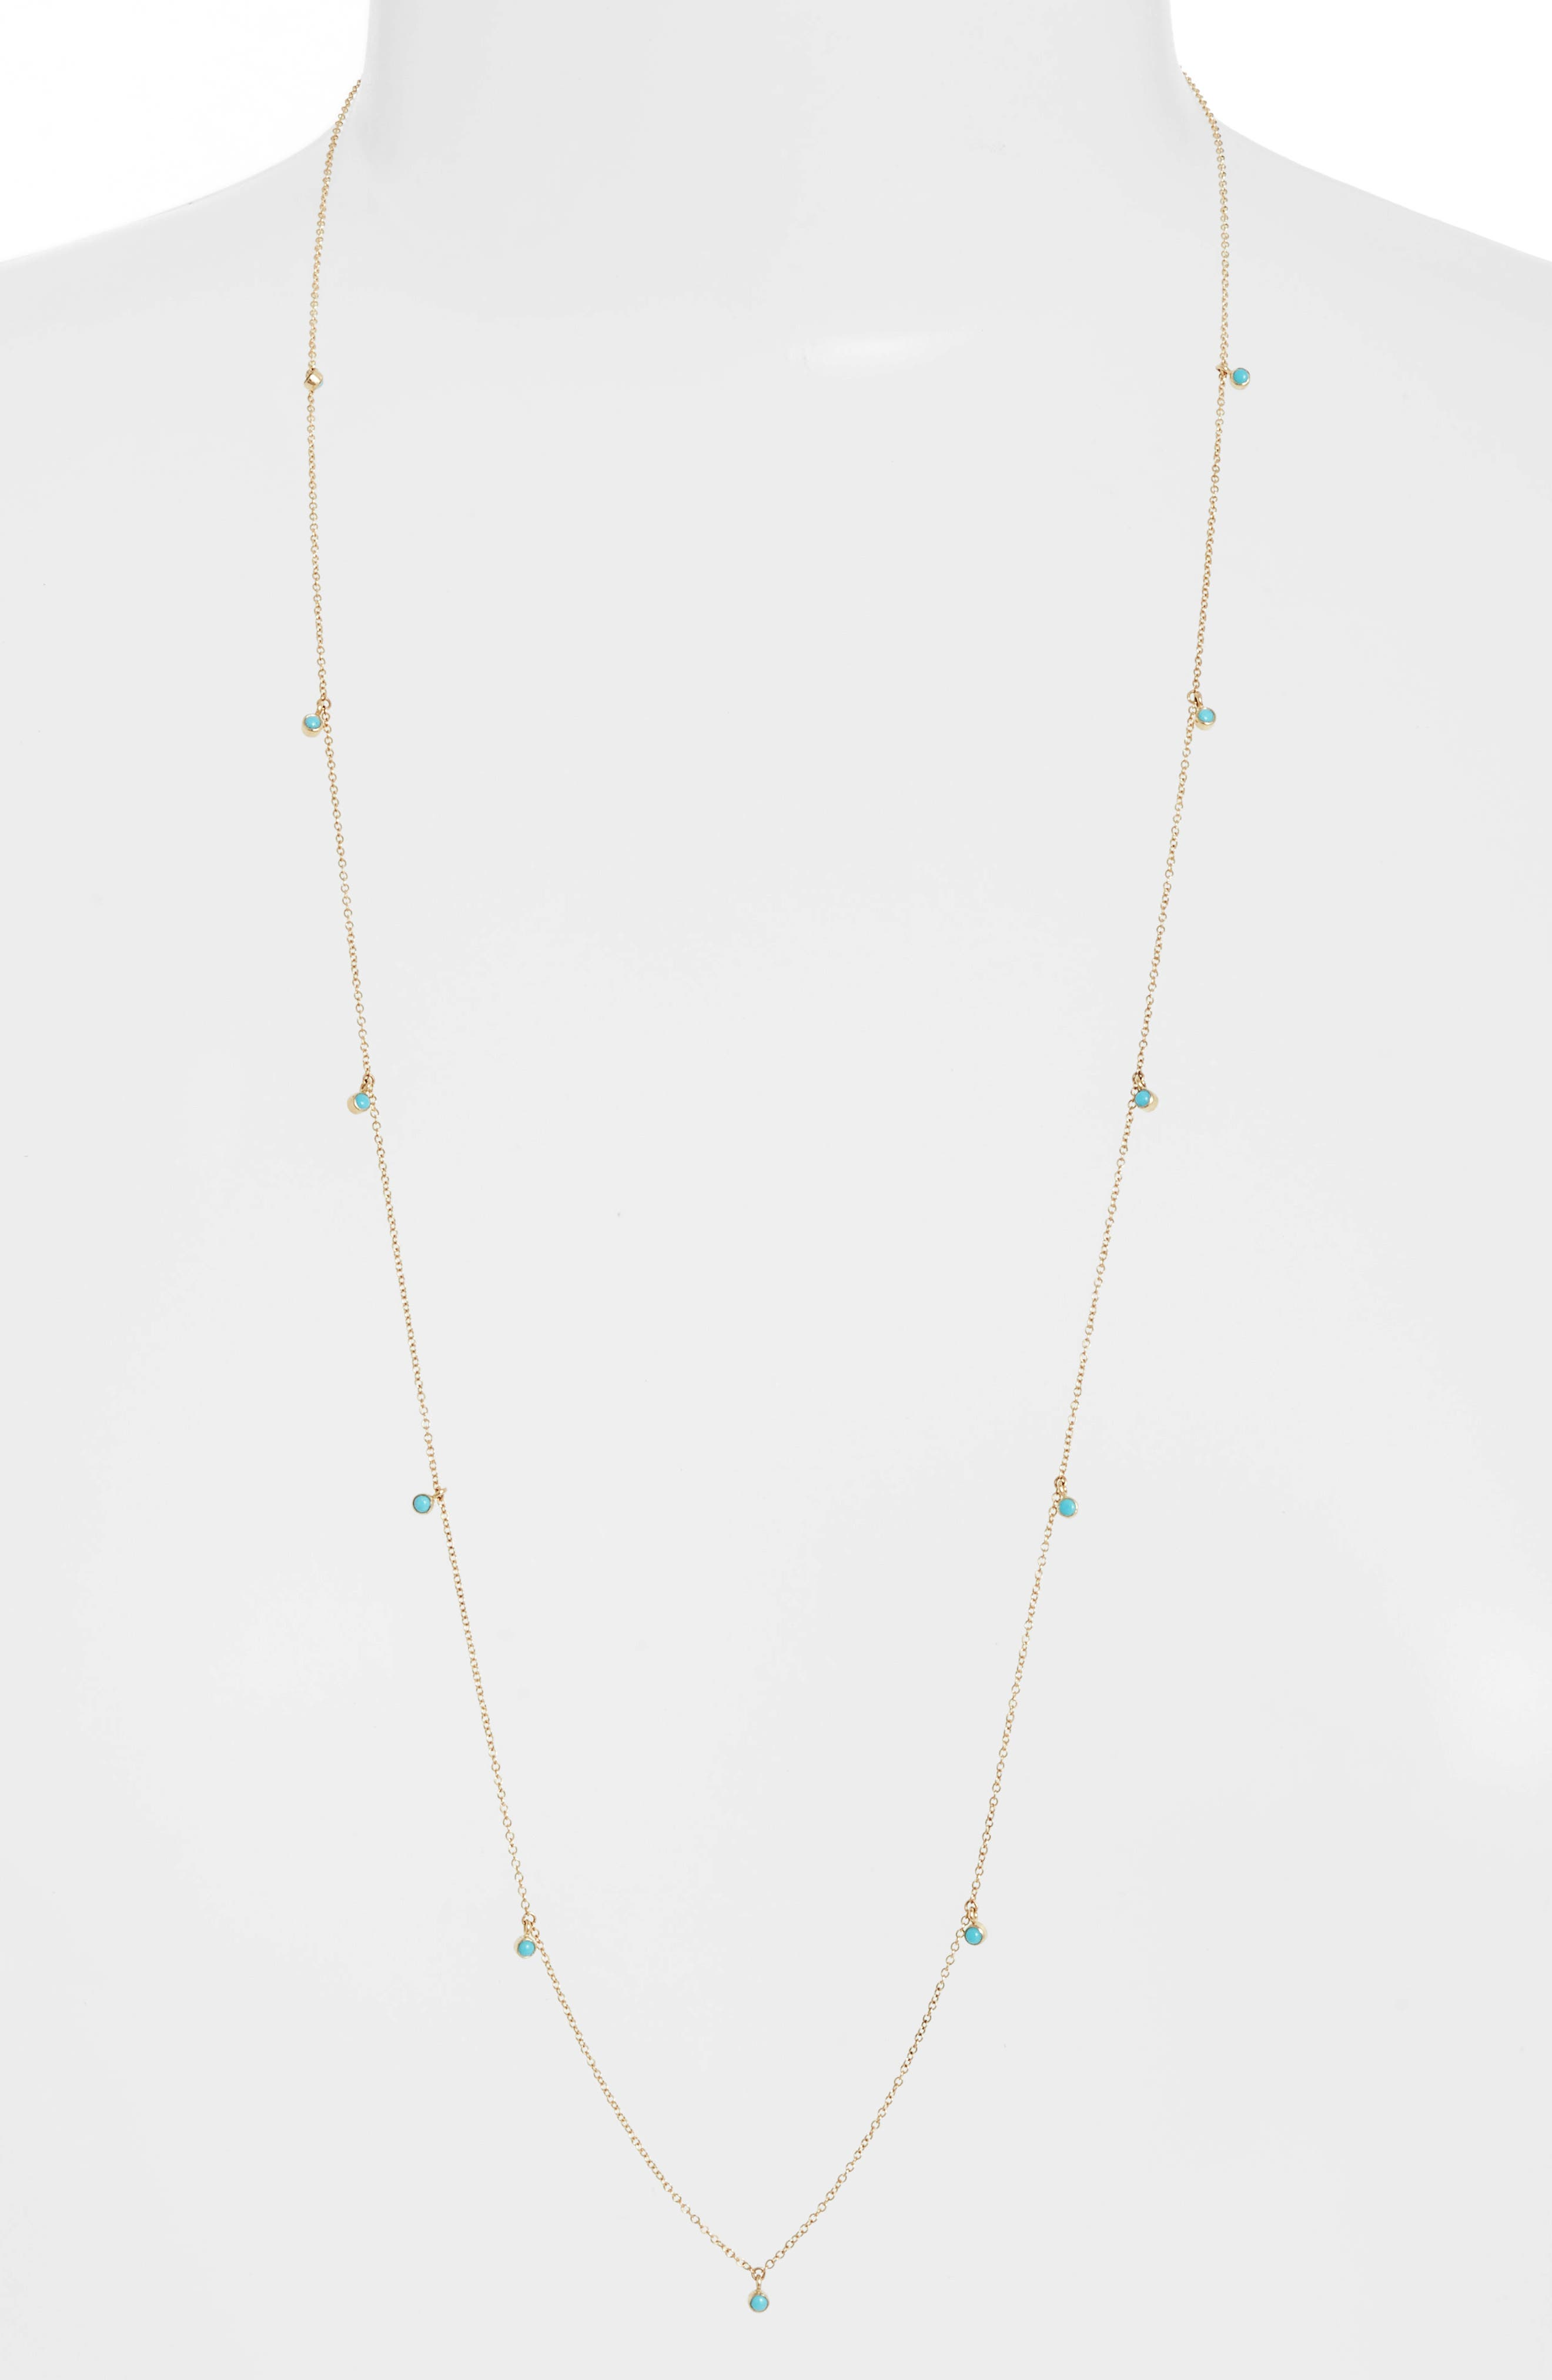 Dangling Turquoise Station Long Necklace,                         Main,                         color, YELLOW GOLD